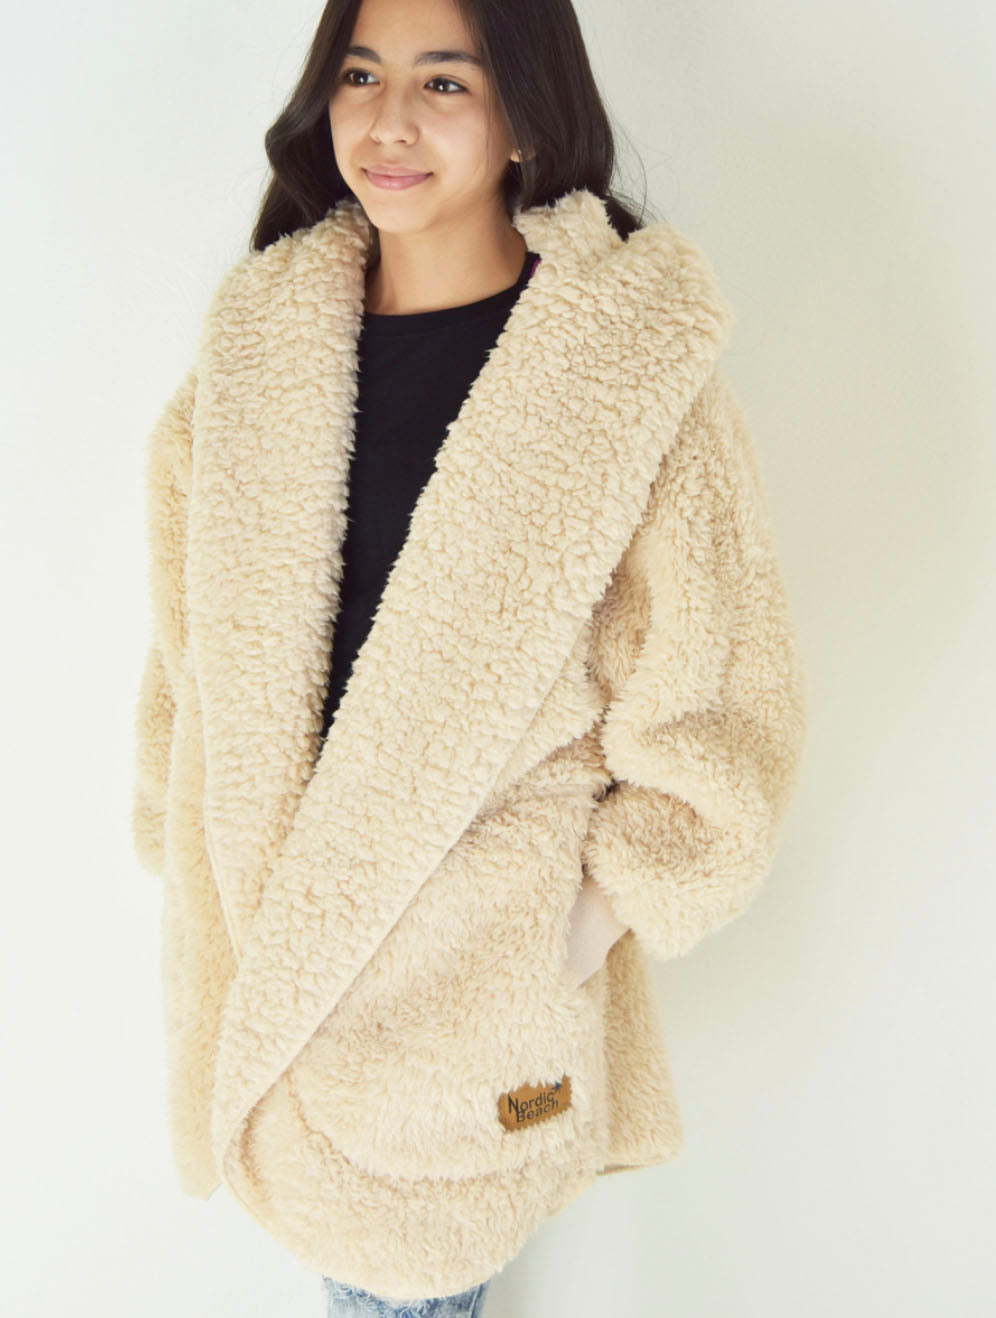 Nordic Beach Wrap in Fluffy Frappe in Petite Sizing